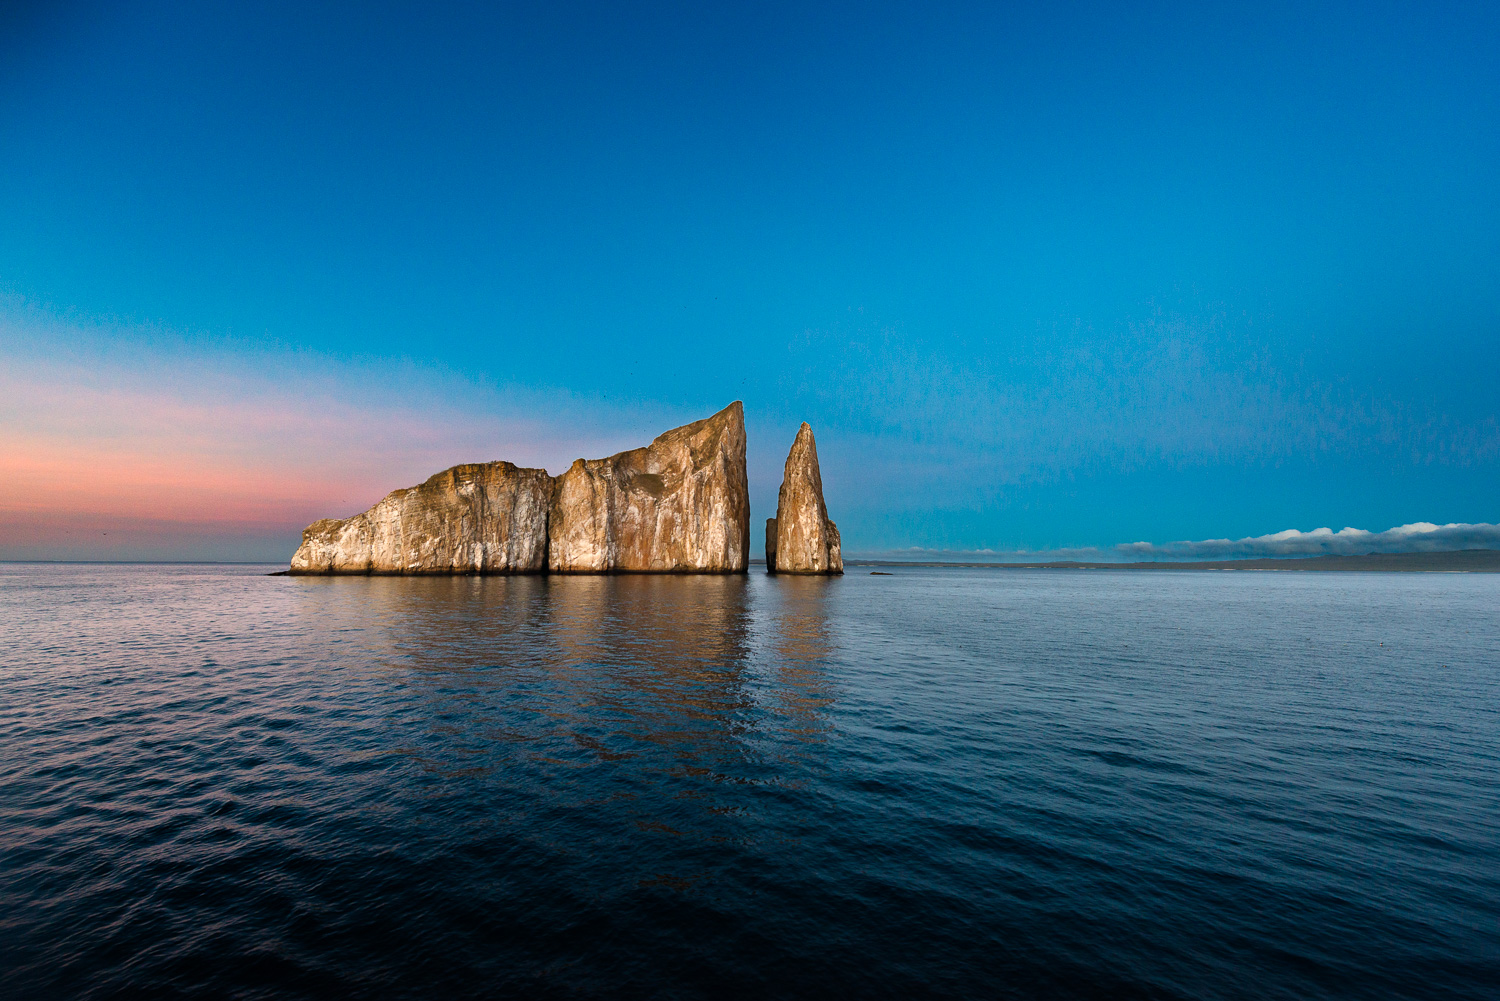 dusk at Kicker Rock, Galapagos Islands, Ecuador